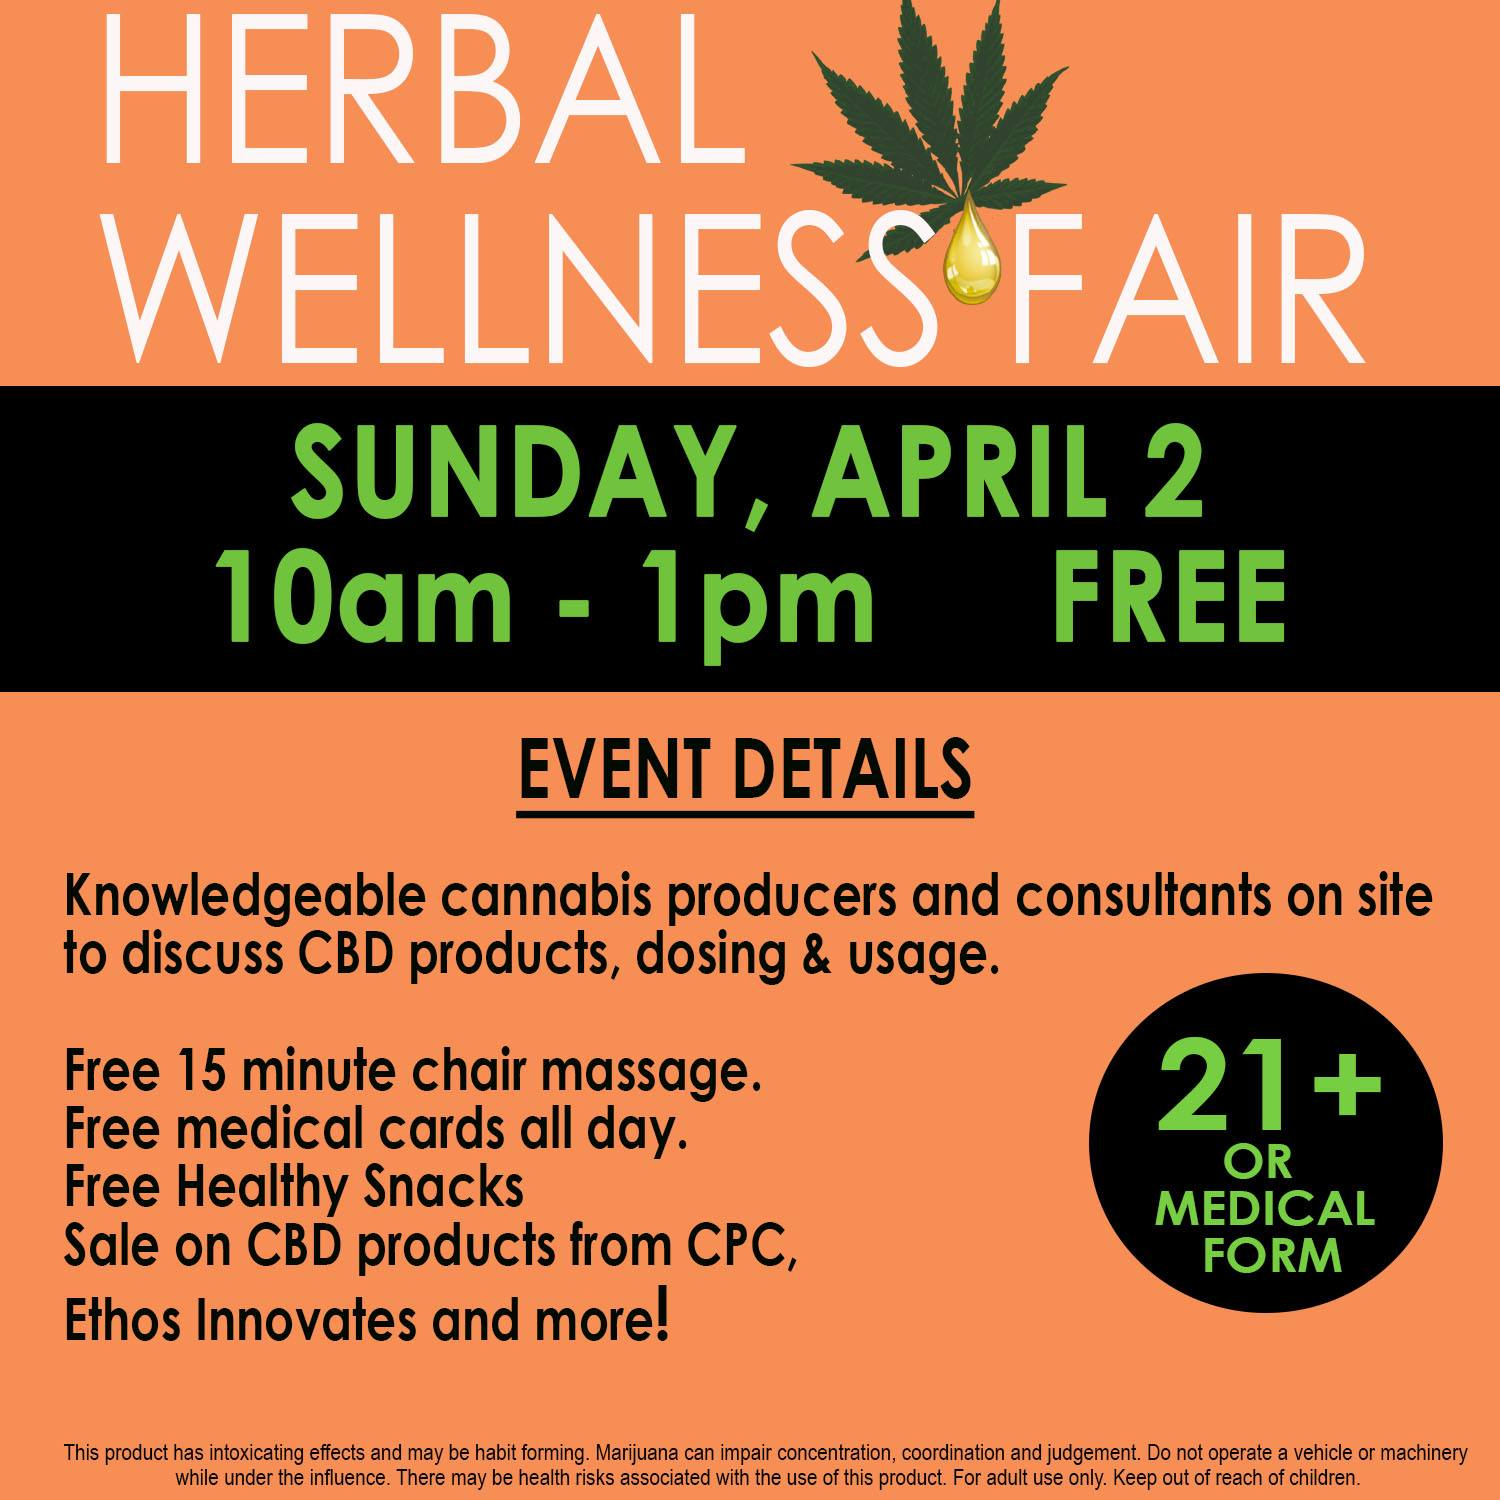 Bellingham Wellness Fair Poster